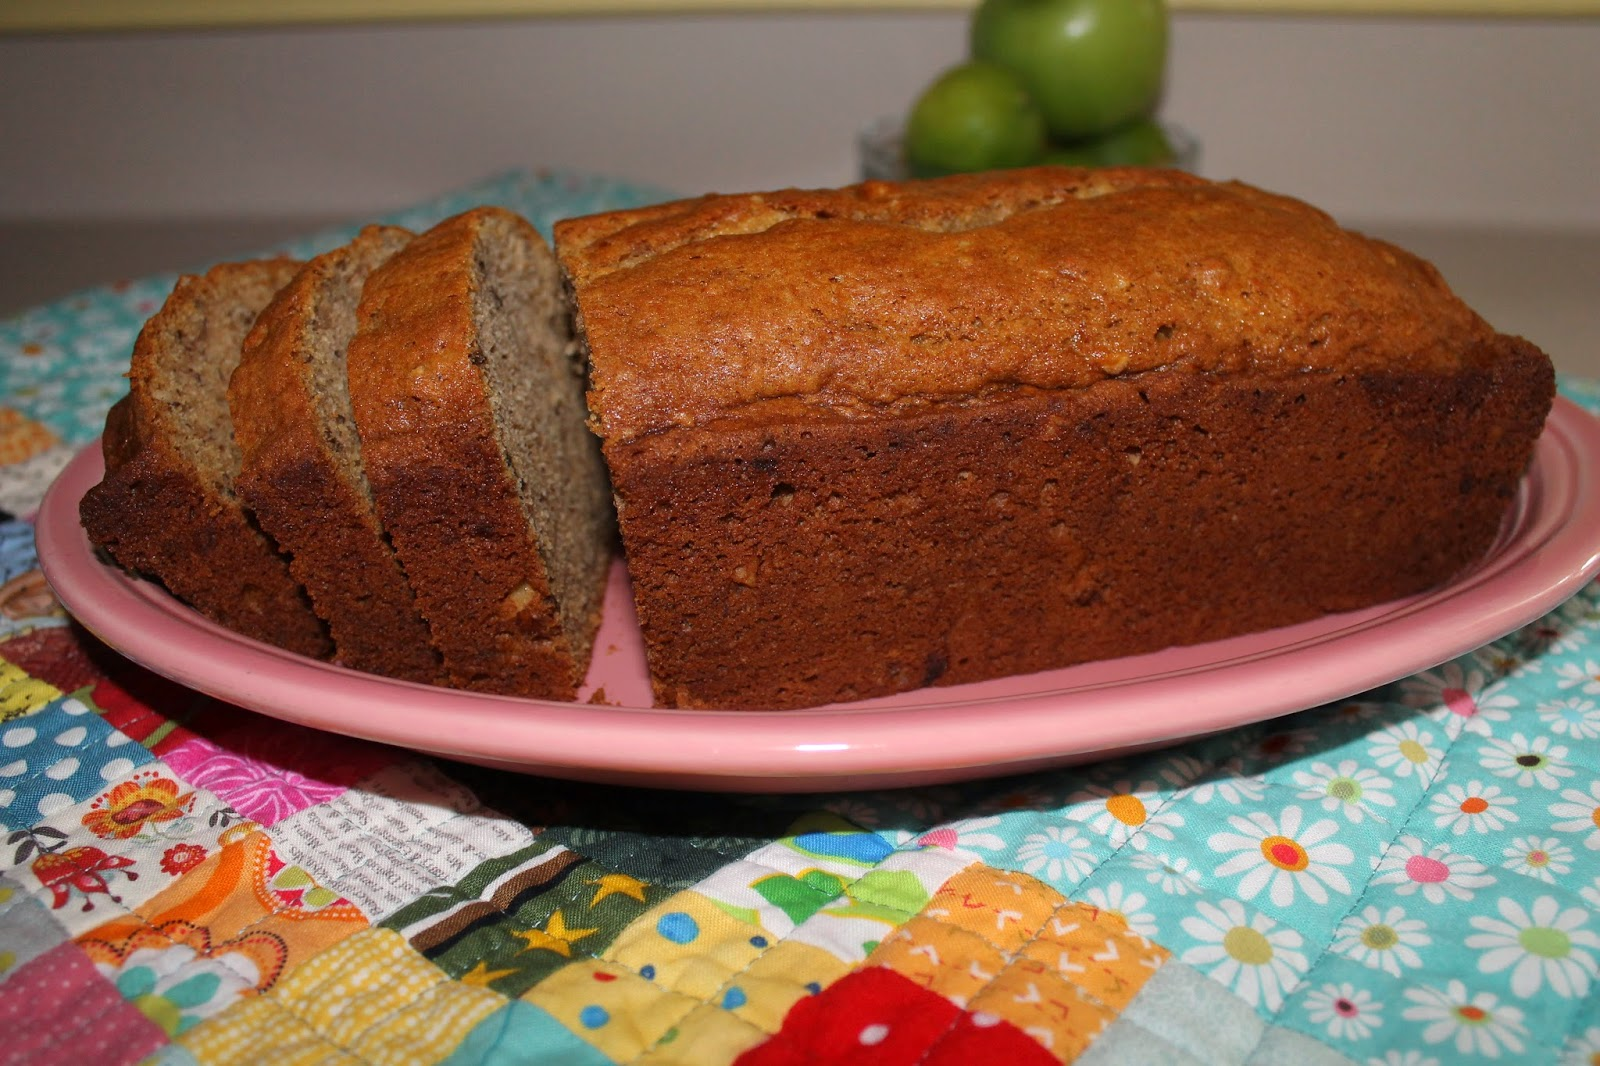 http://www.foodnetwork.com/recipes/banana-bread-recipe.html?soc=sharingpinterest